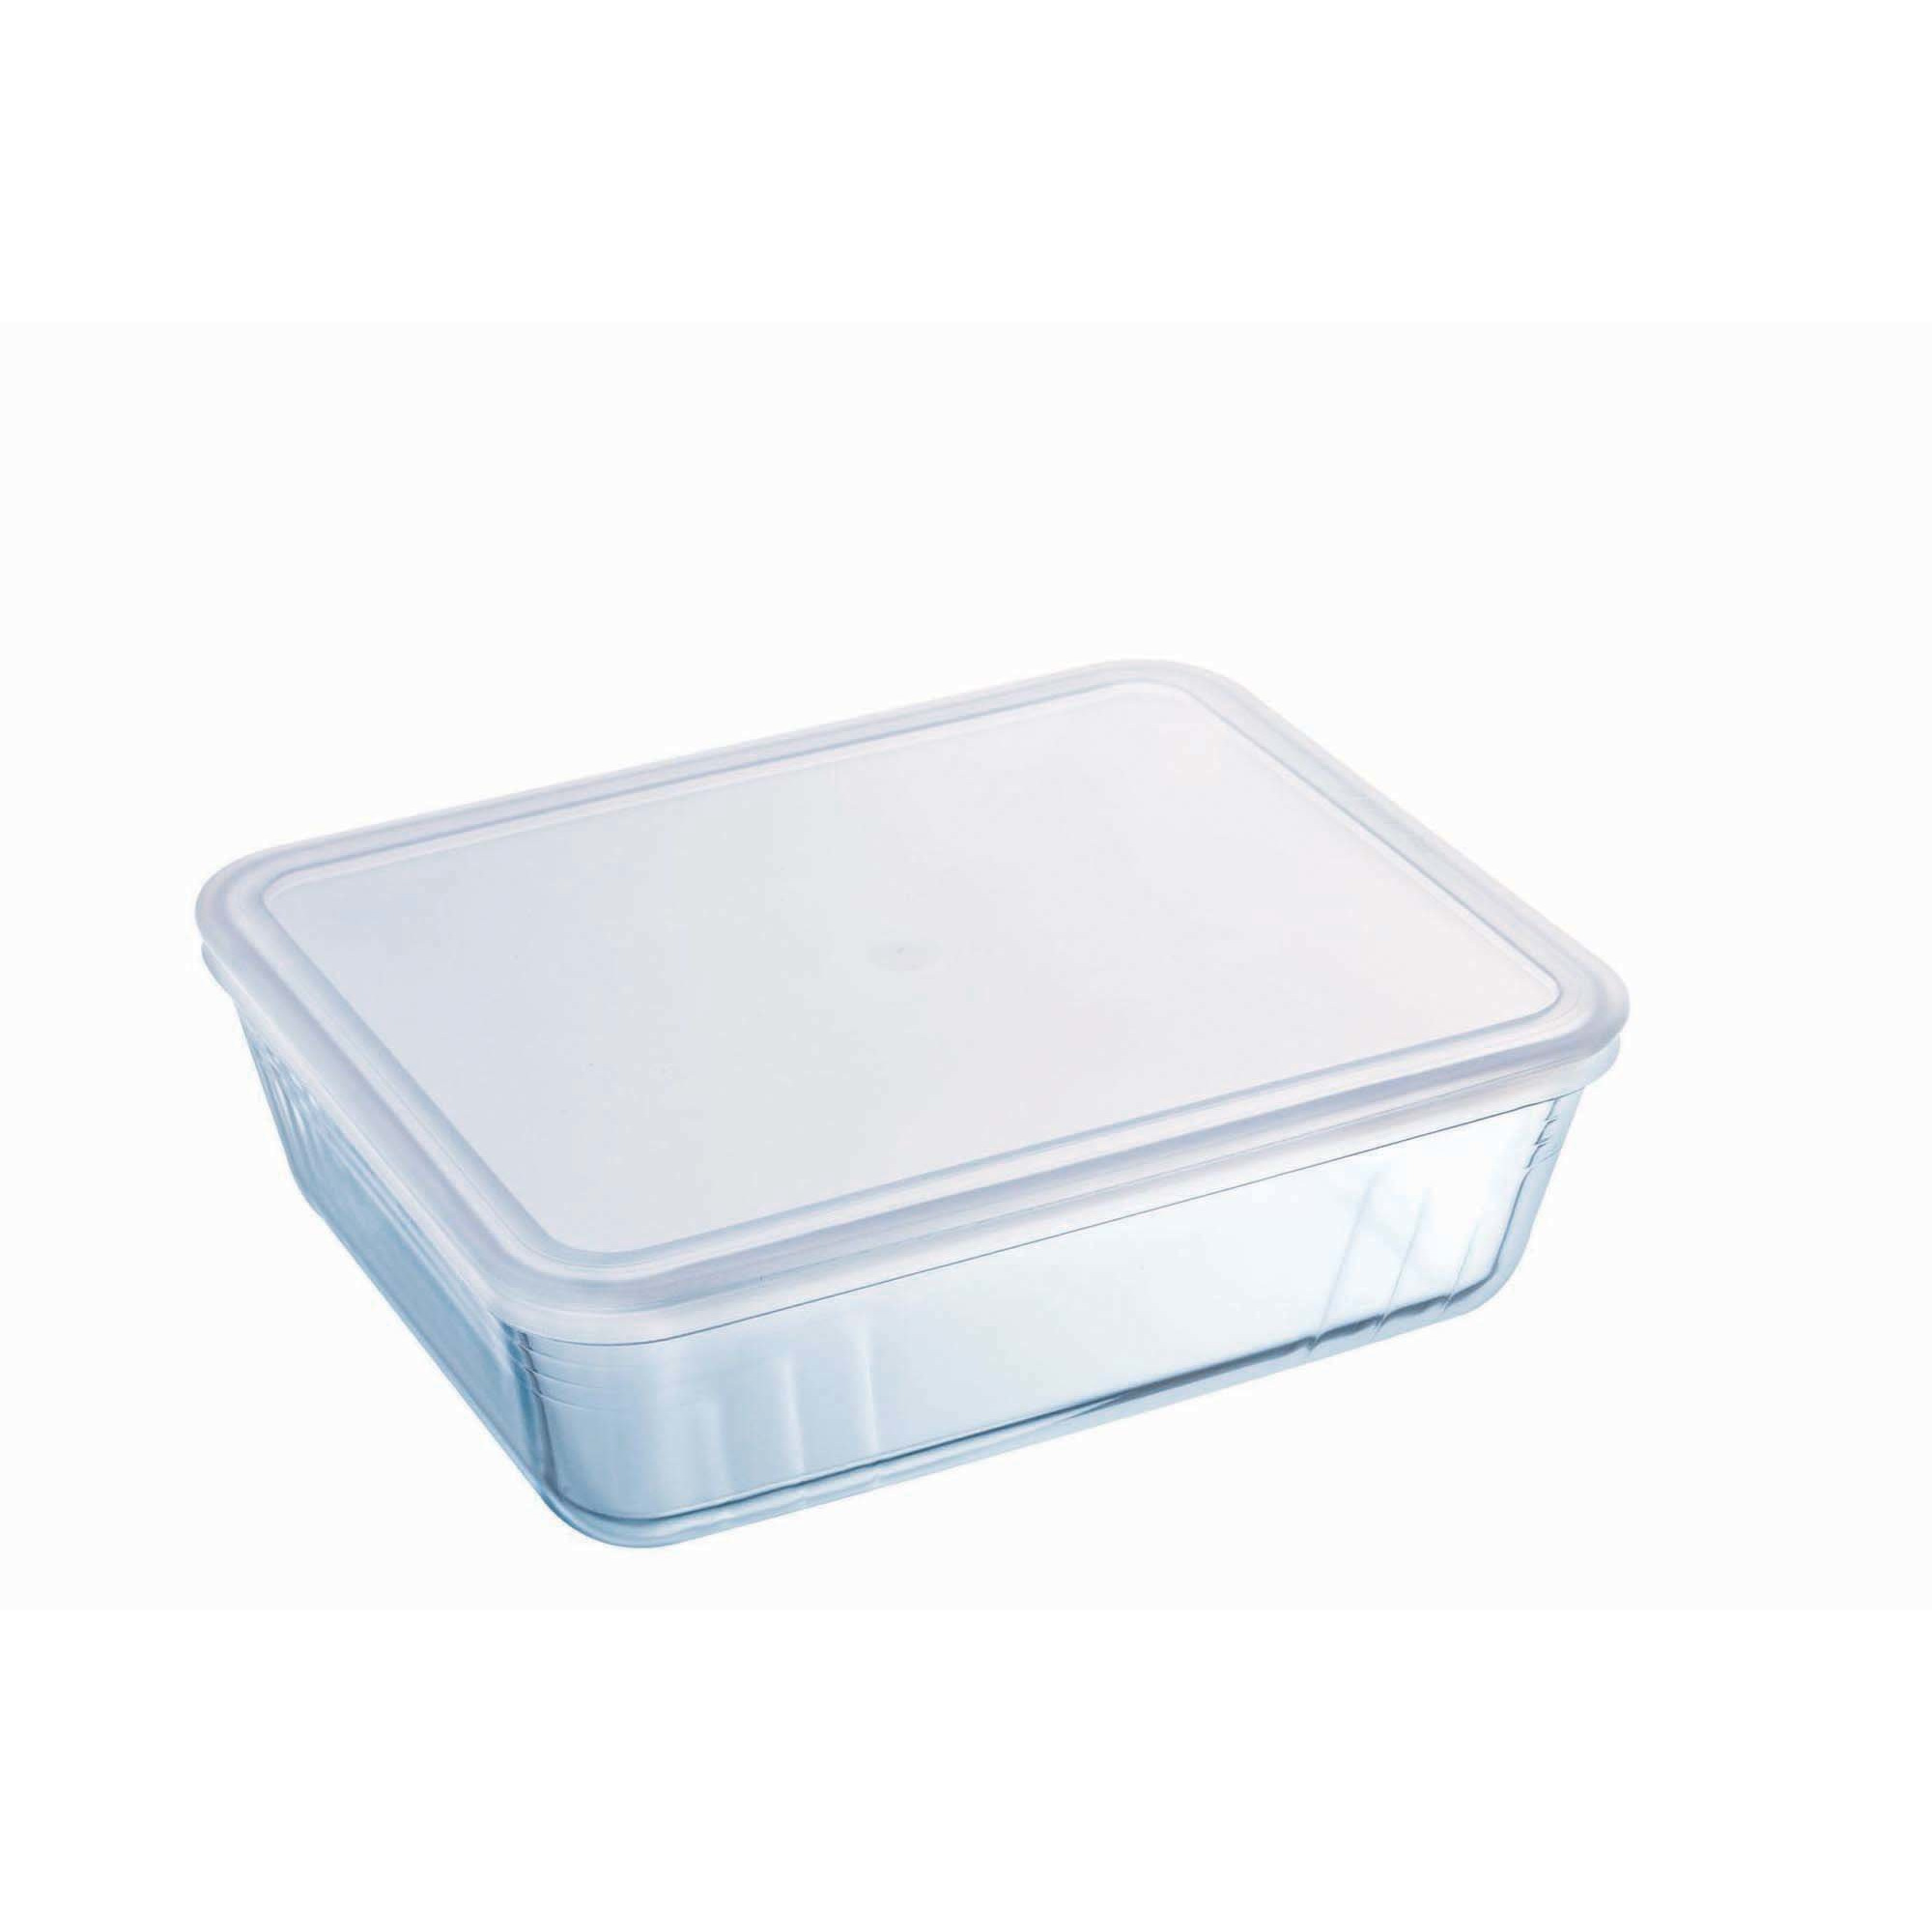 Pyrex Cook & Freeze Ugnsform med Lock/Matlåda 25×19 cm 26 l